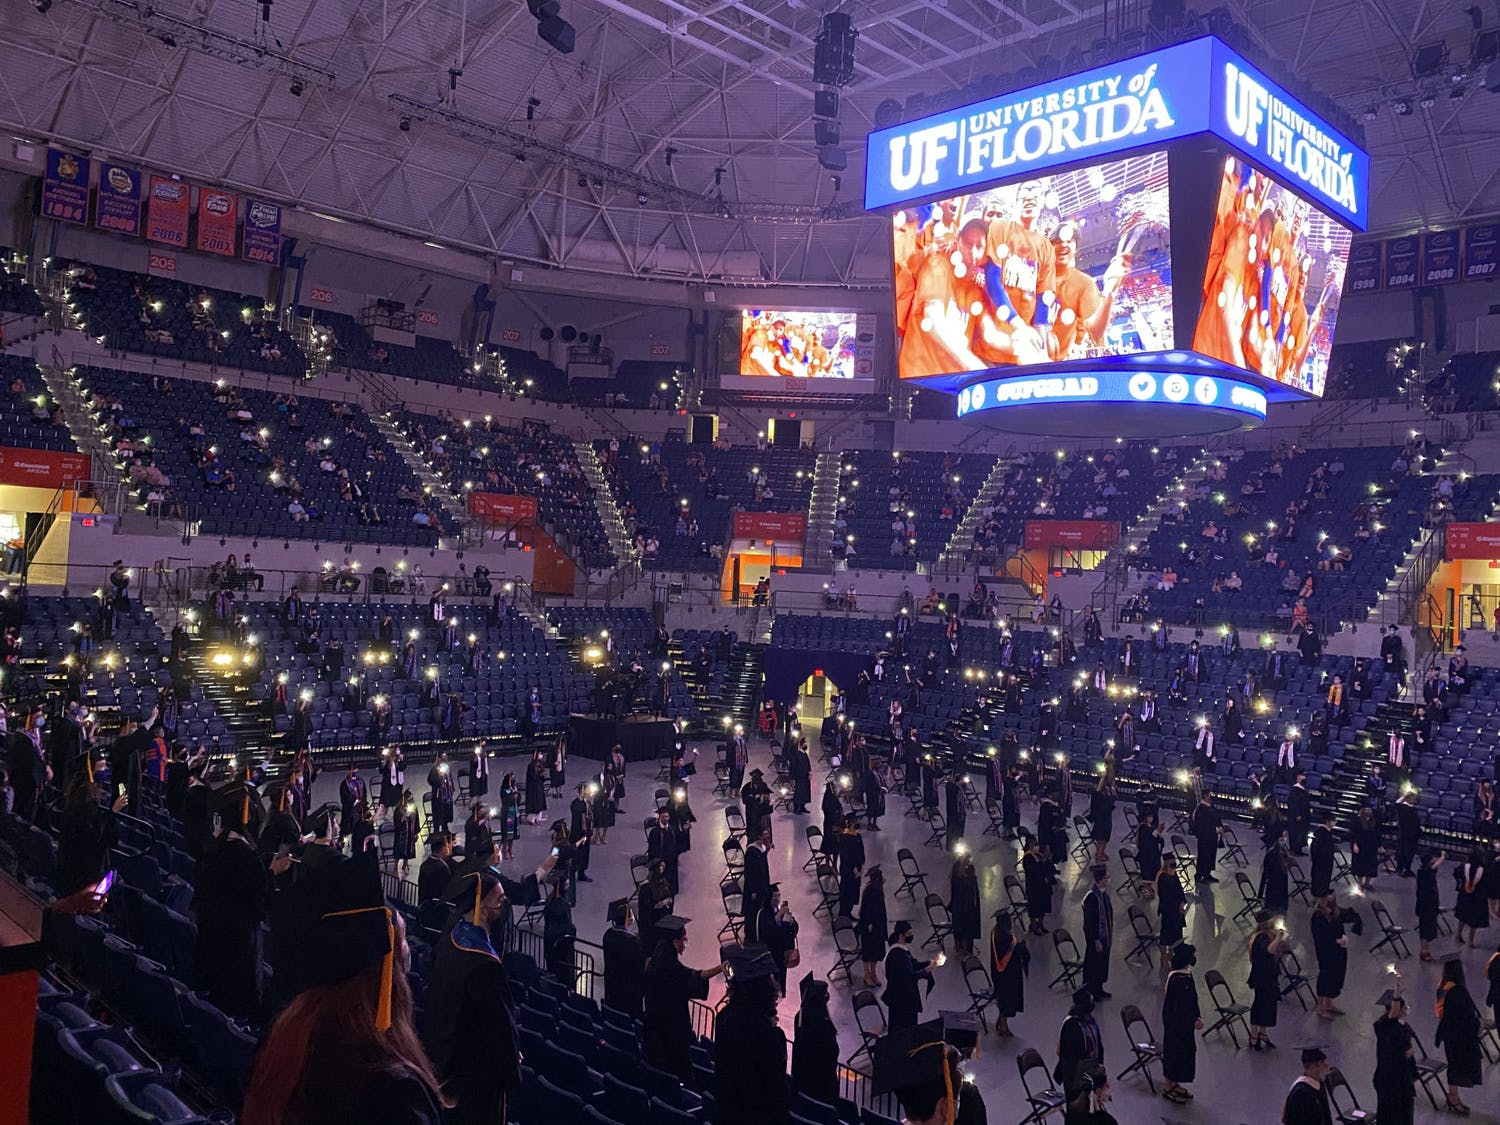 """UF graduates stand and sing along to Tom Petty's """"I Won't Back Down"""" during the 2021 graduation ceremony on Saturday, May 1, 2021. (Photo by Makiya Seminera)"""